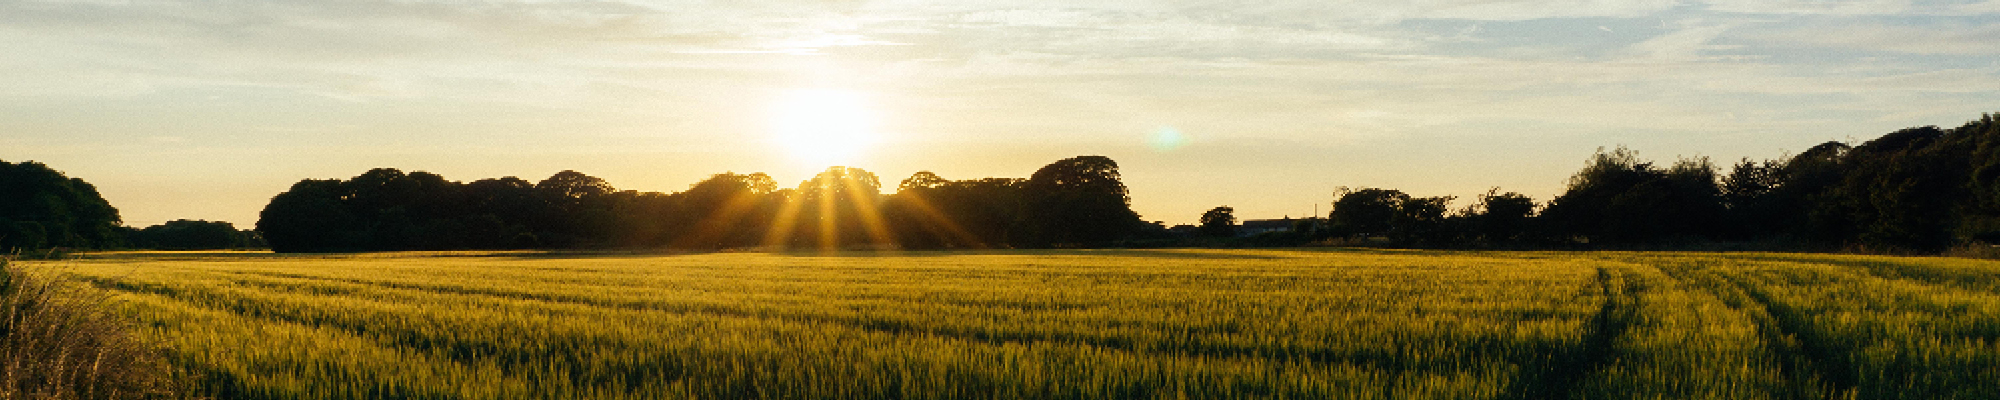 Sunset with large field and tree line on horizon